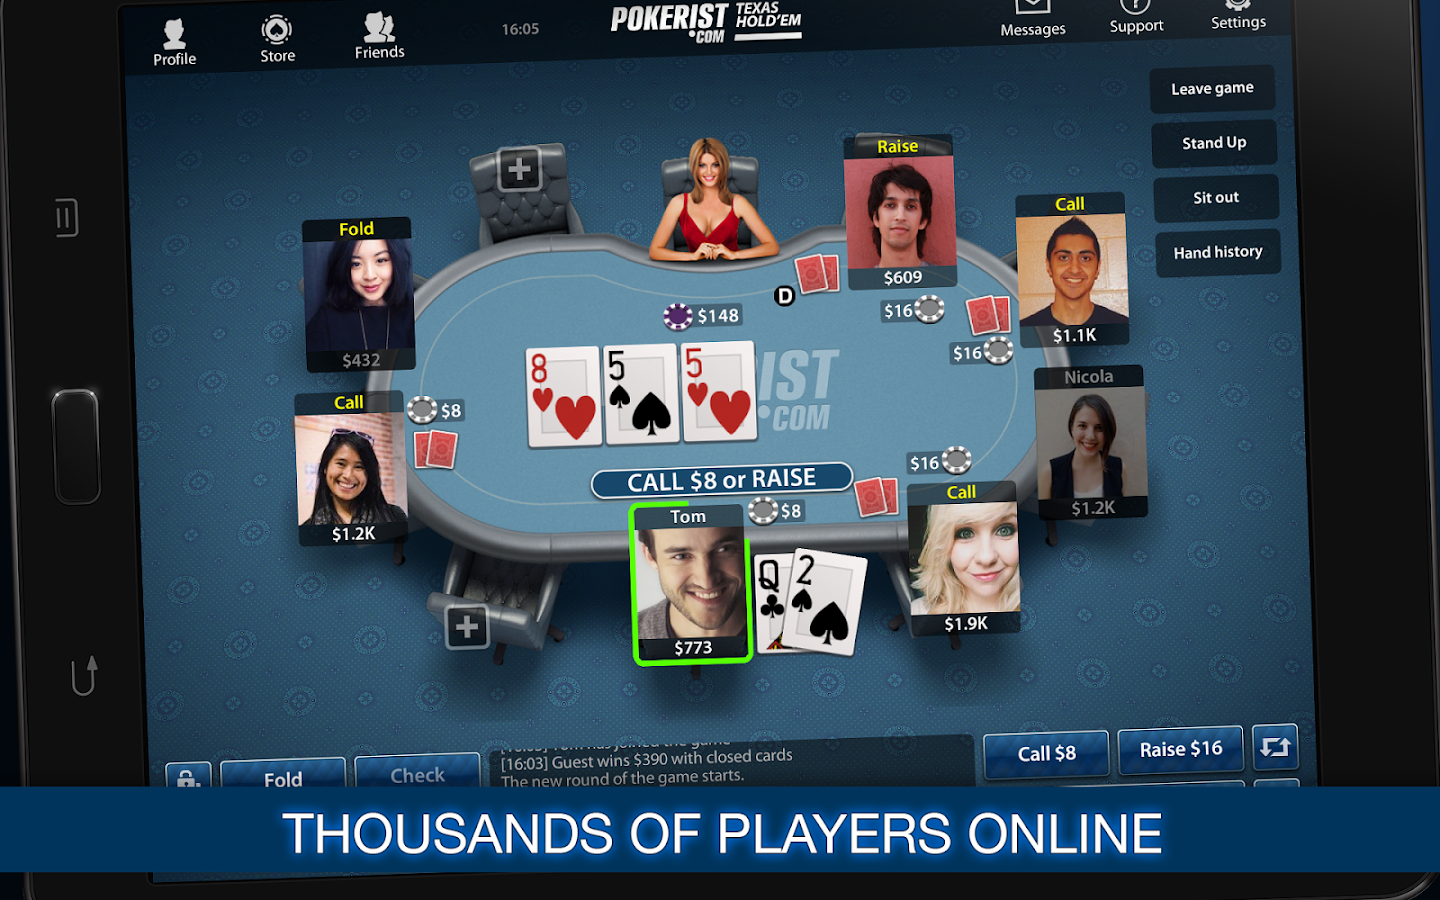 Texas Poker Screenshot 5